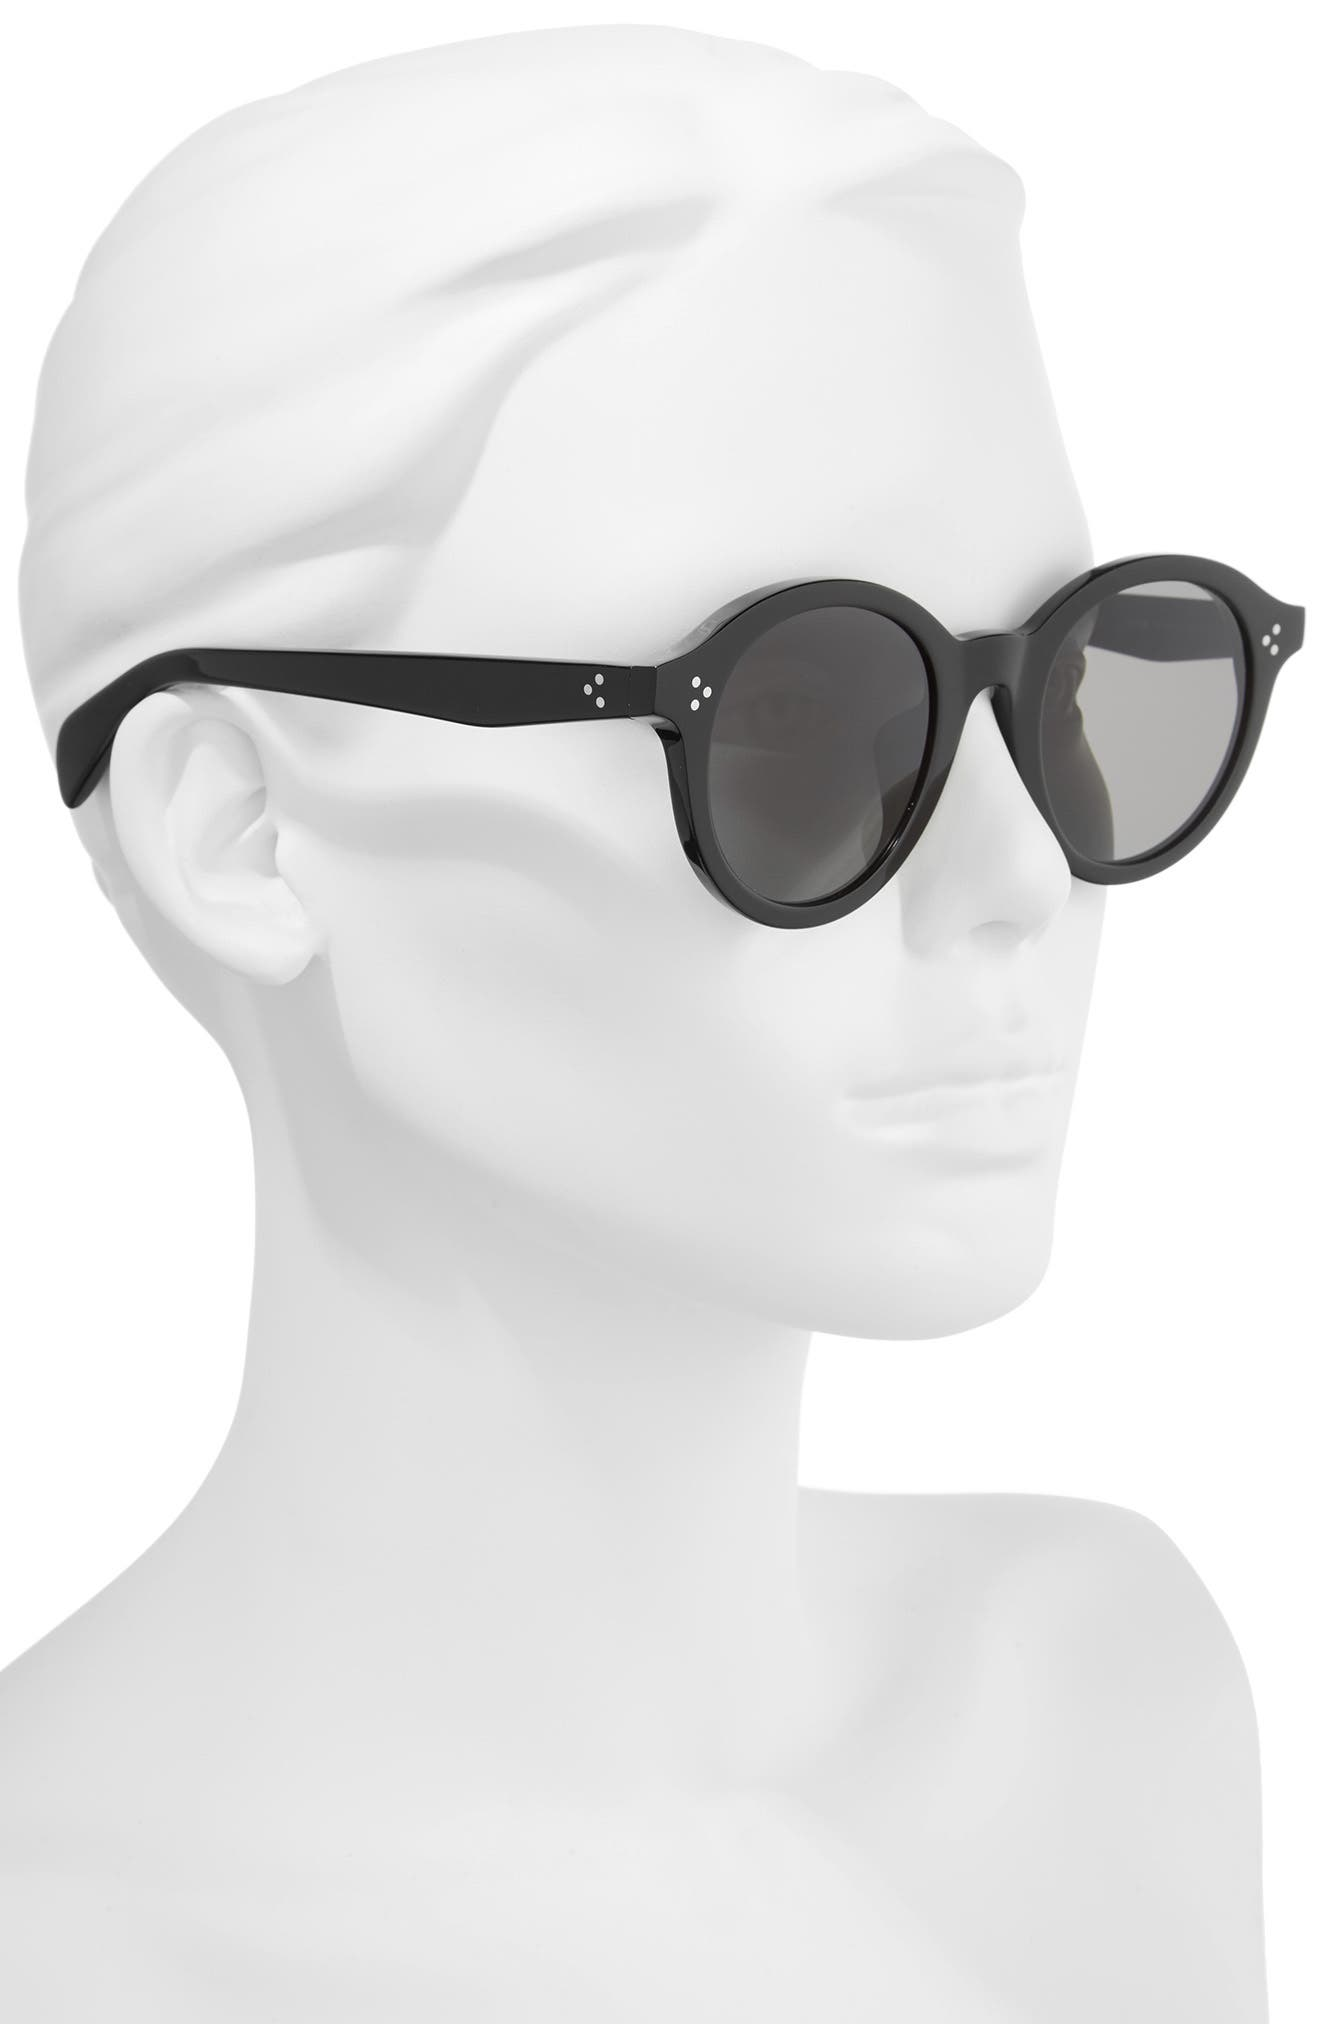 Special Fit 50mm Round Sunglasses,                             Alternate thumbnail 2, color,                             Black/ Smoke